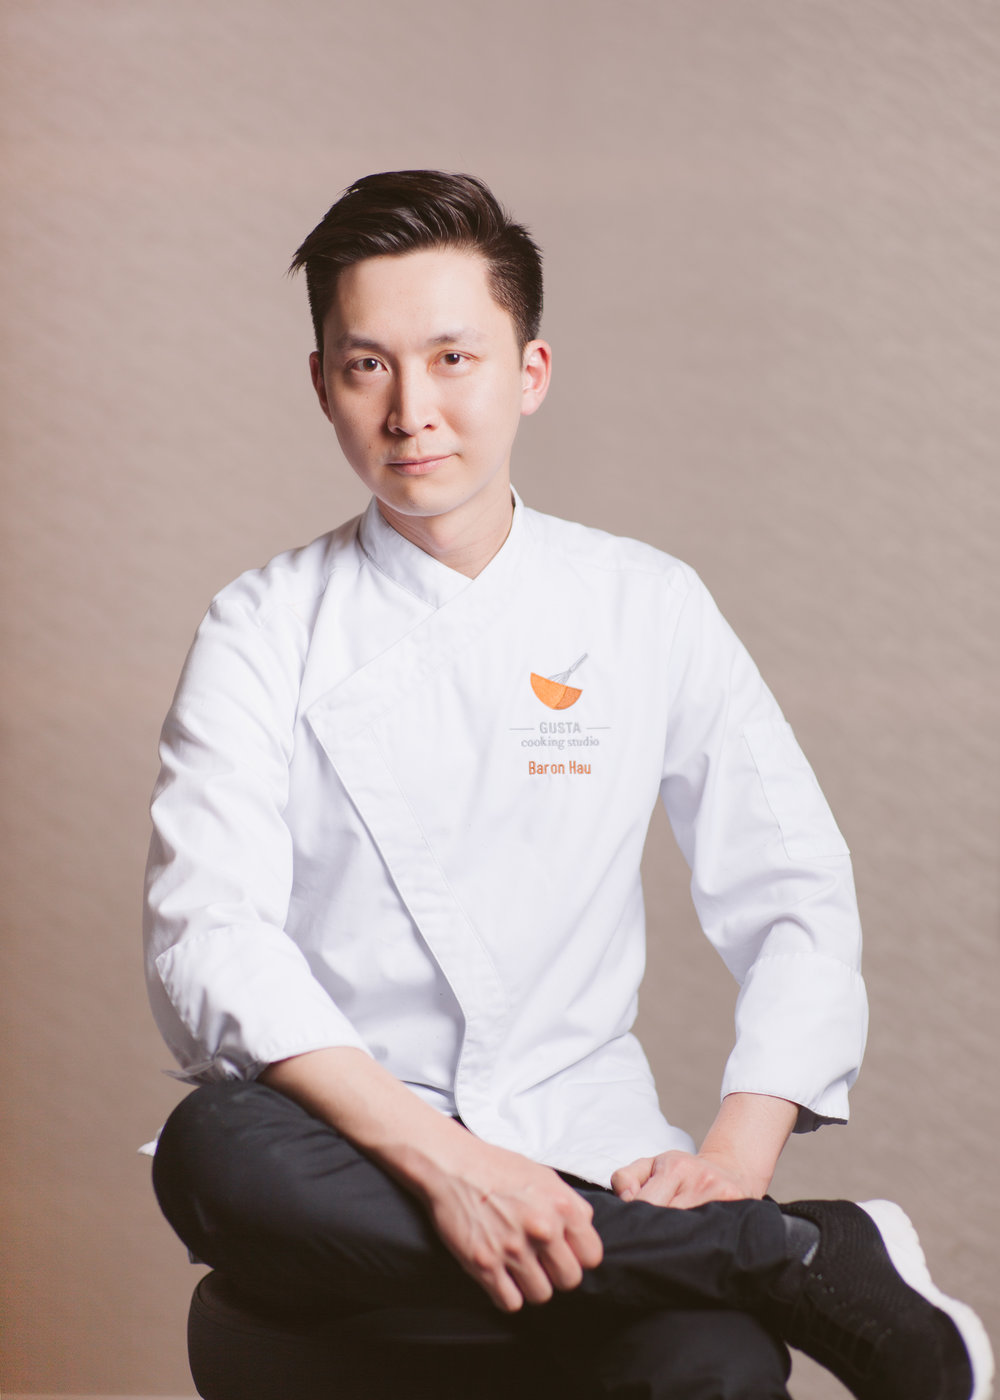 Baron Hau, founding instructor at Gusta Cooking Studio